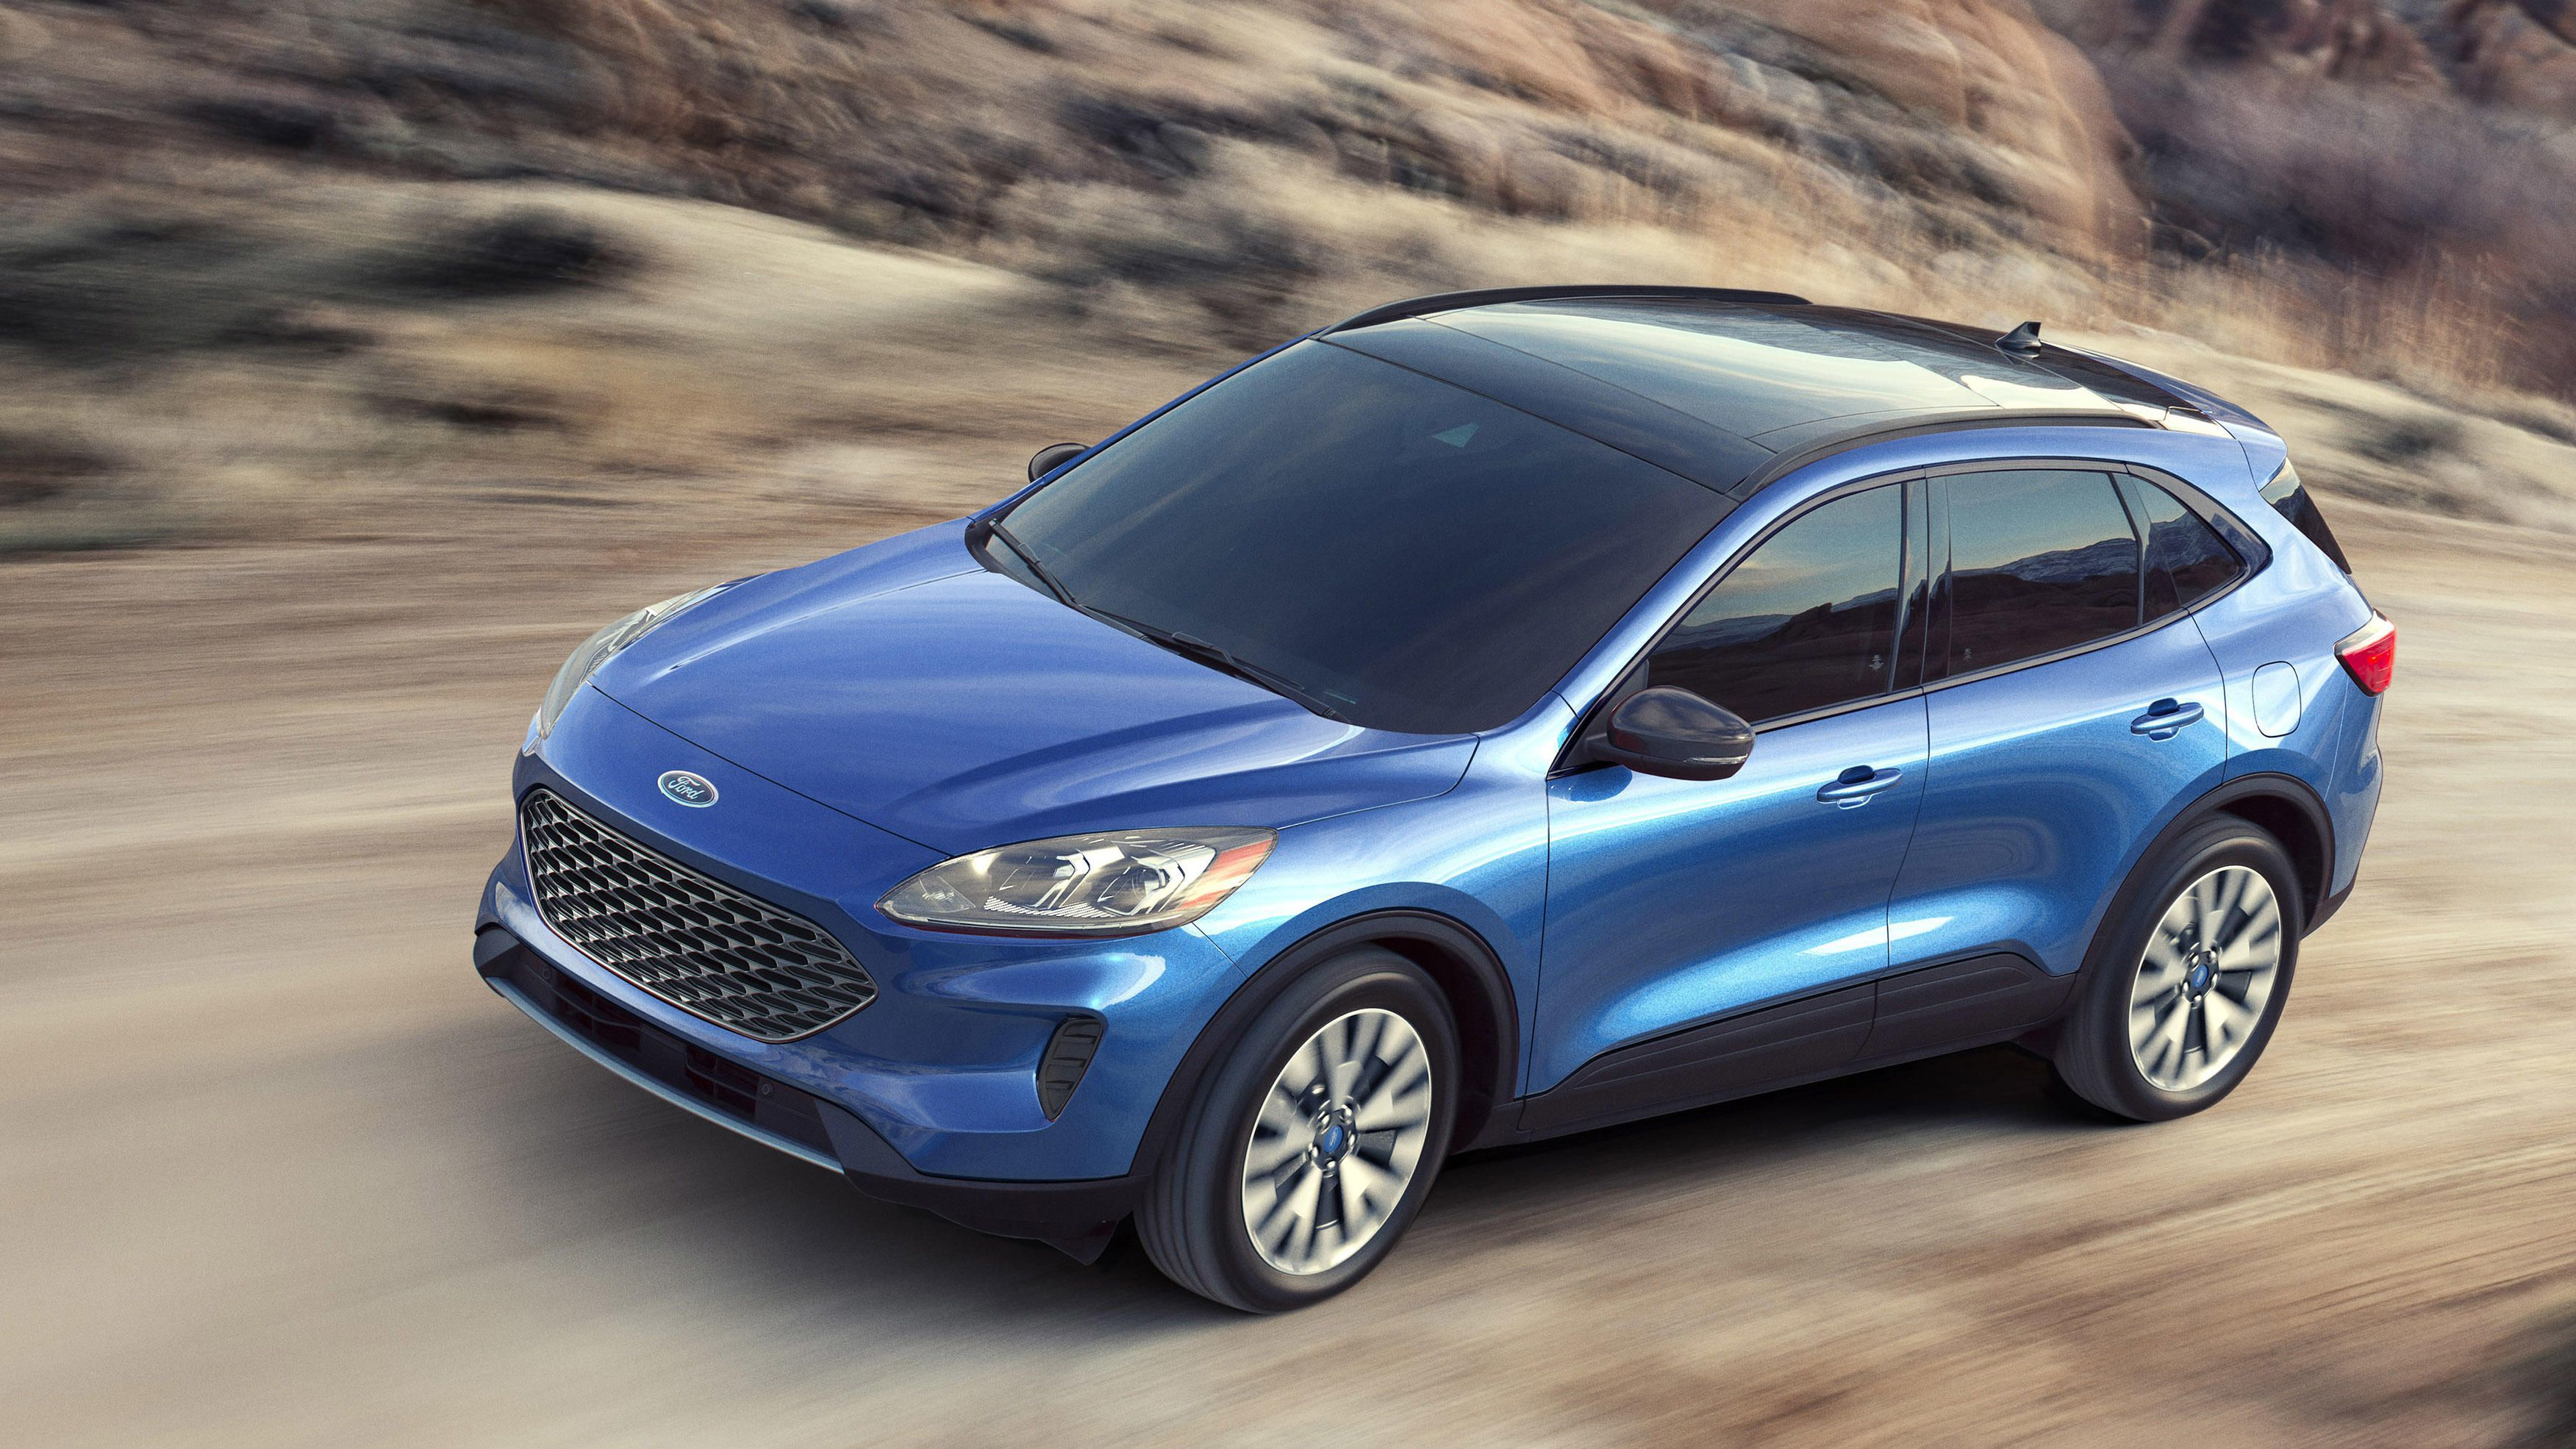 2020 Ford Escape Everything There Is To Know Ford Escape Small